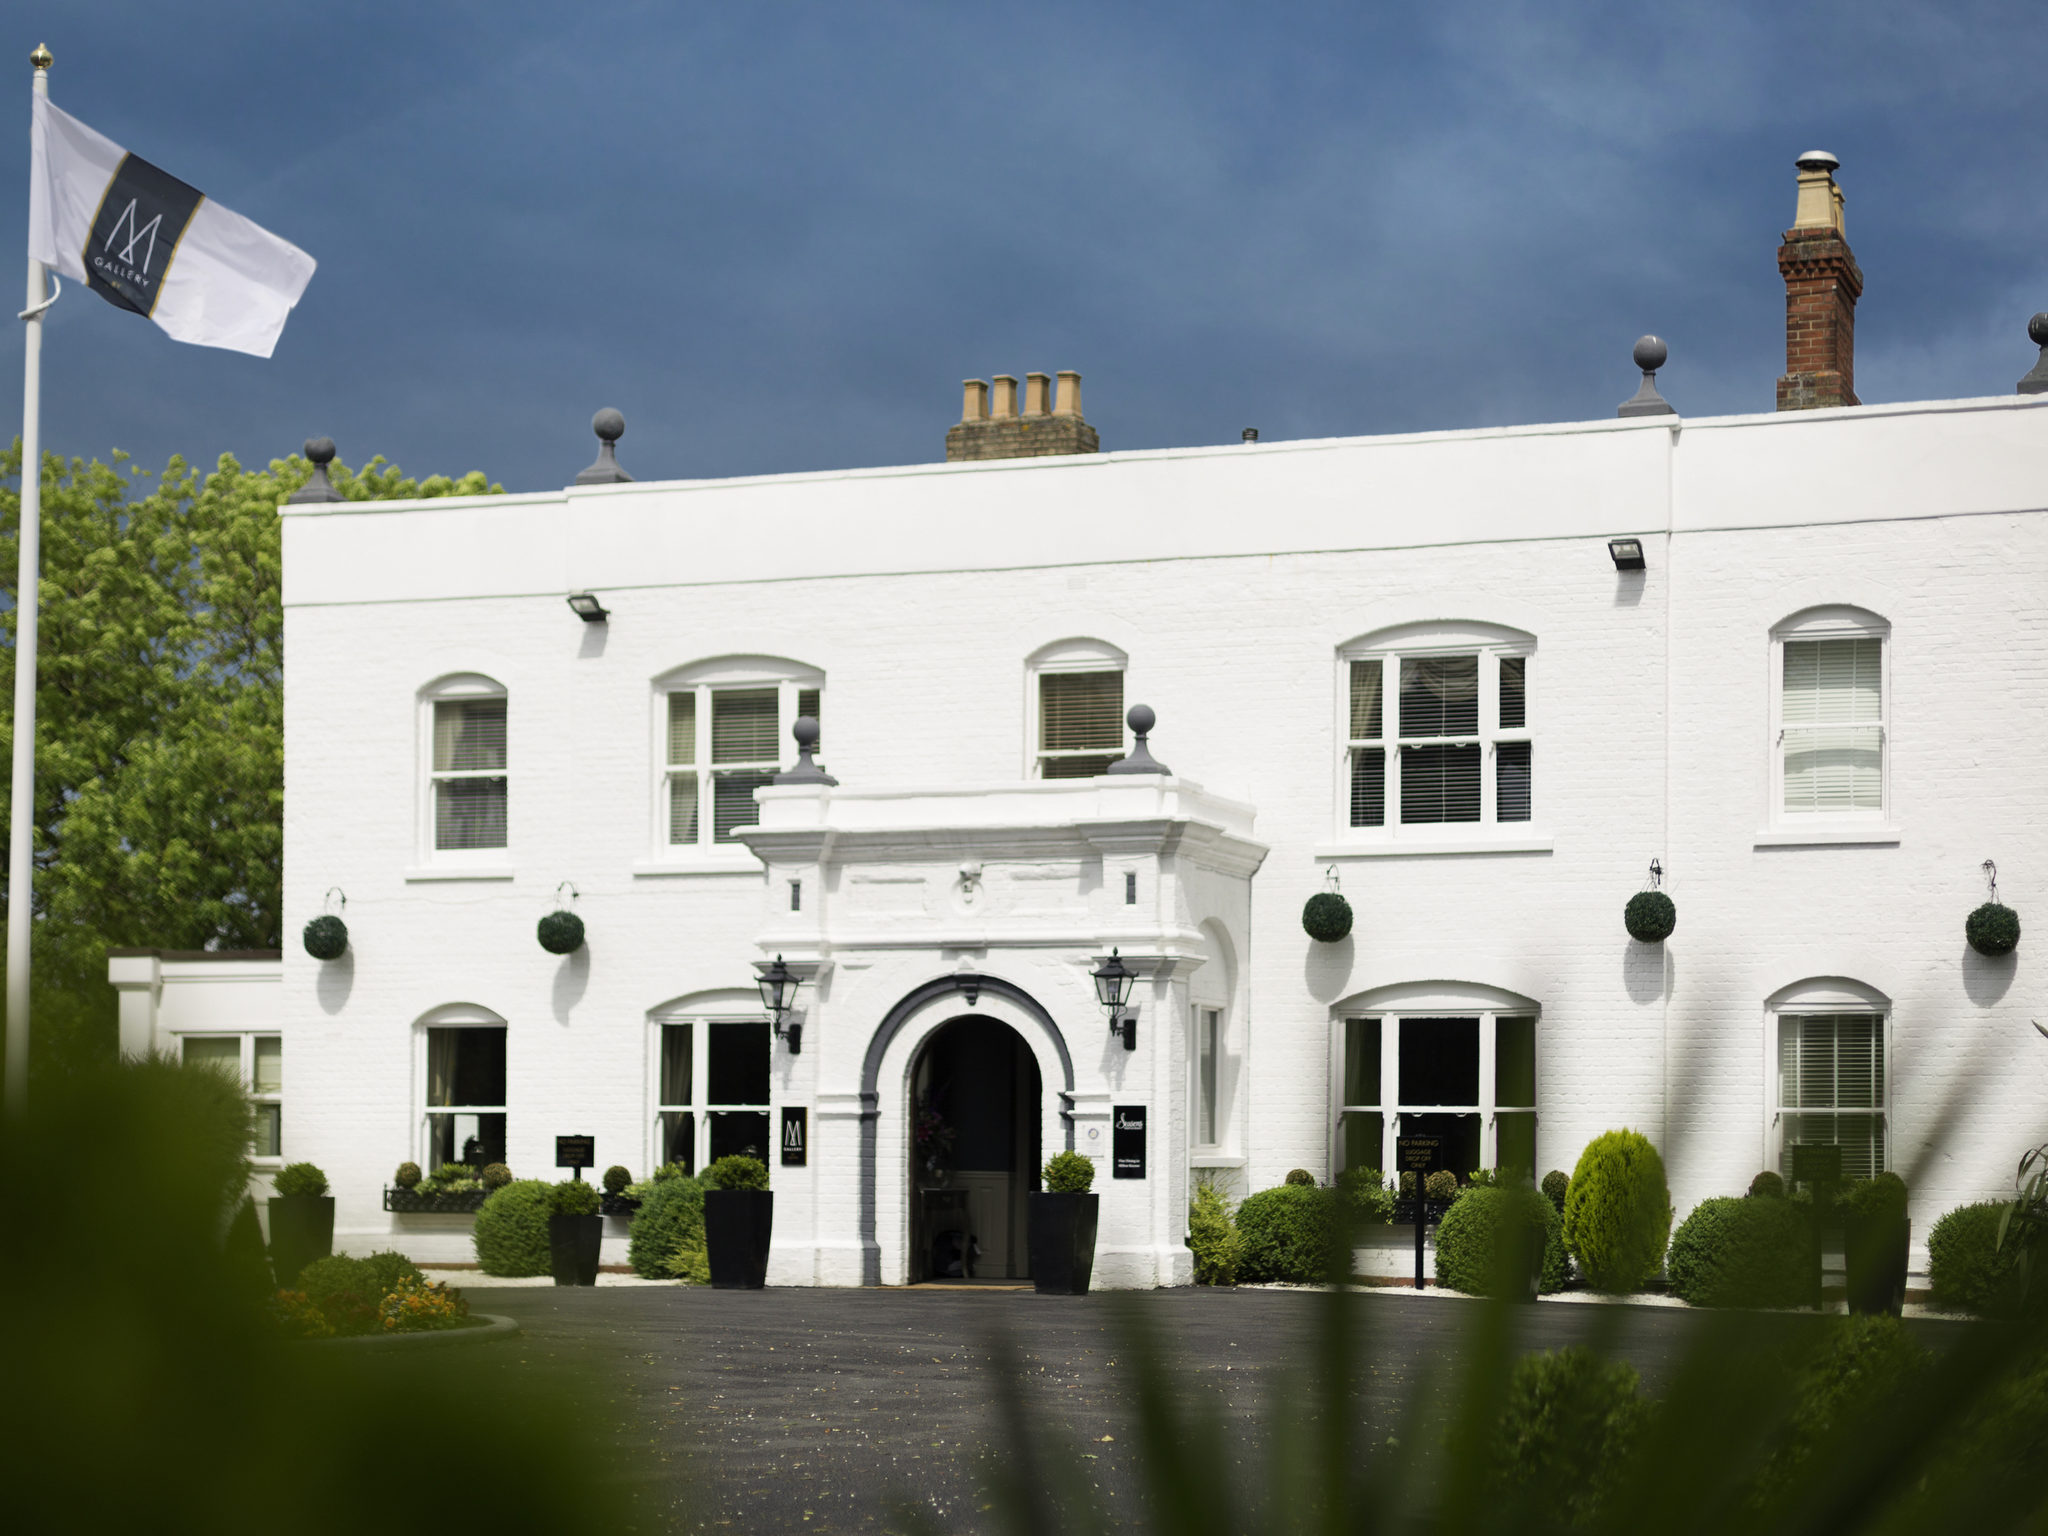 MGallery Woughton House | Hotel in Milton Keynes